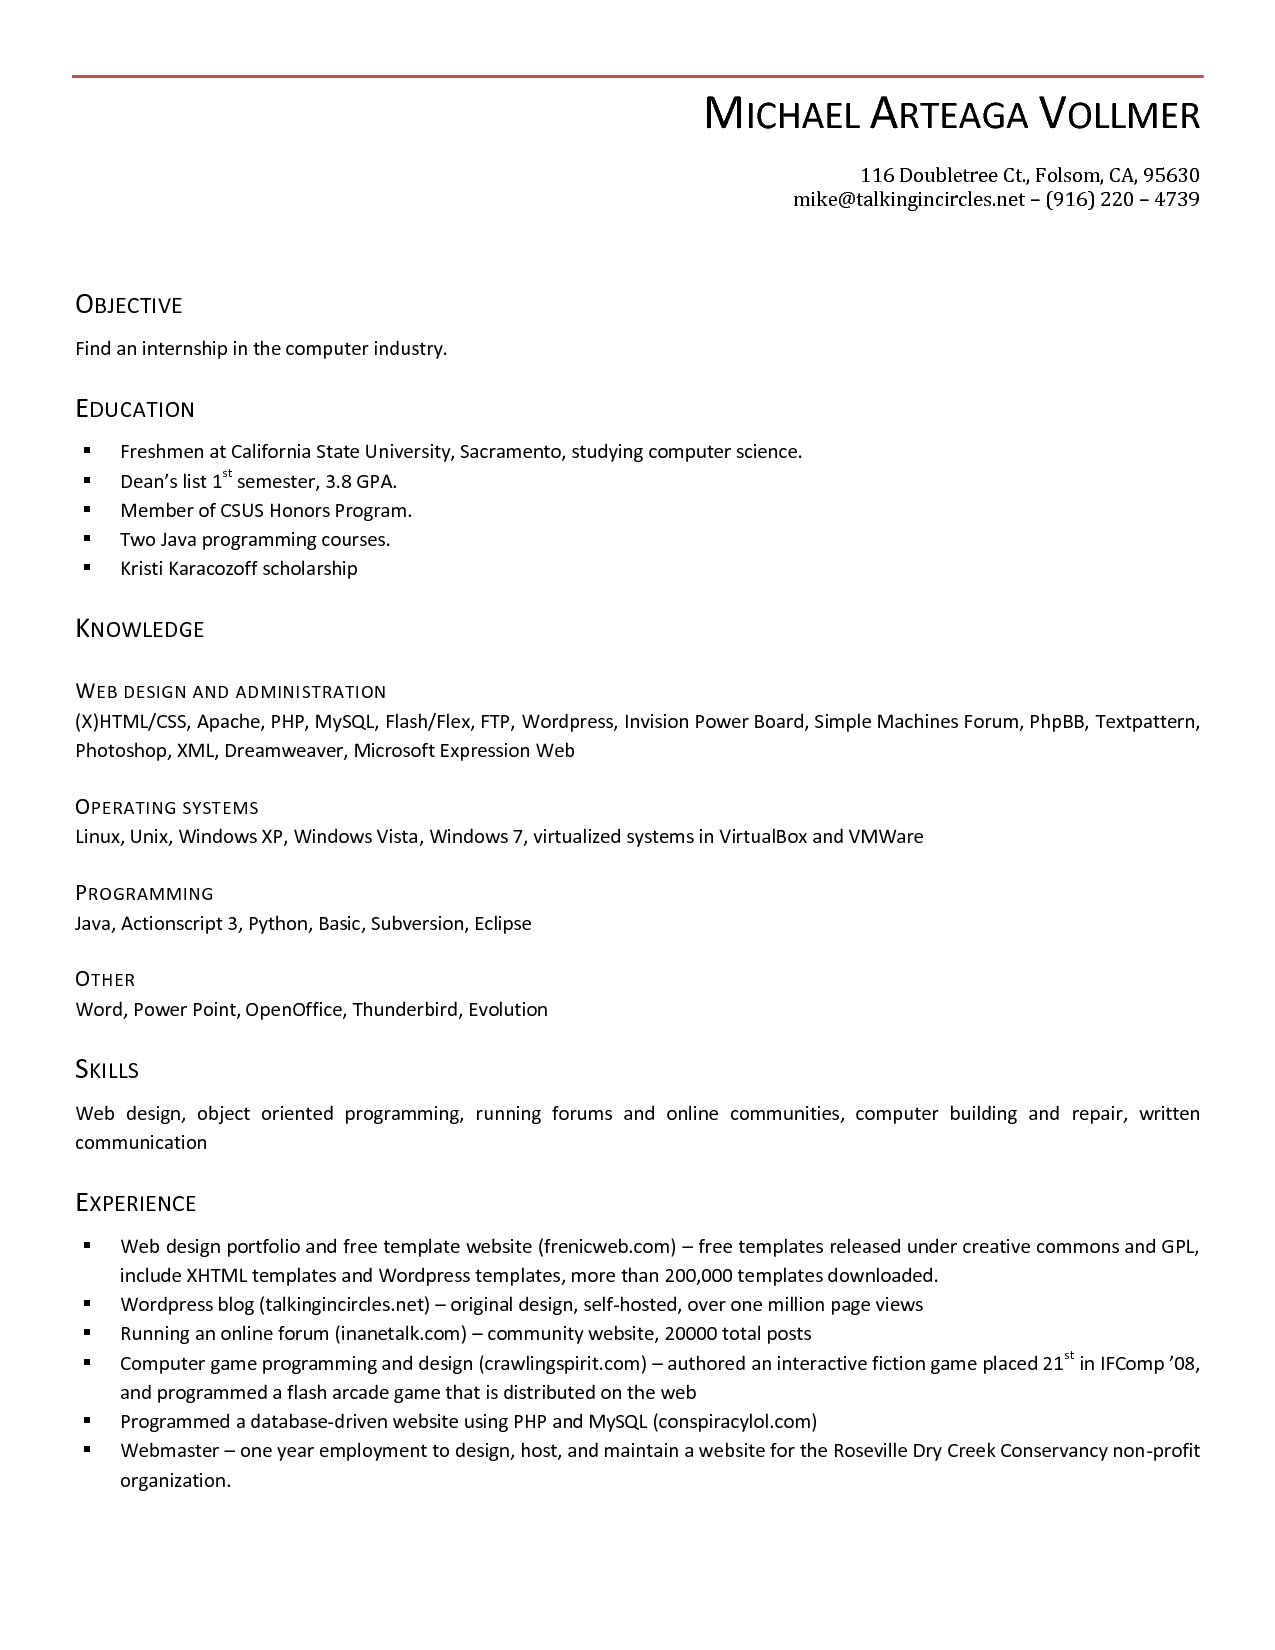 resume templates for openoffice hdresume templates cover letter examples - Cover Letter For Resume Sample Free Download